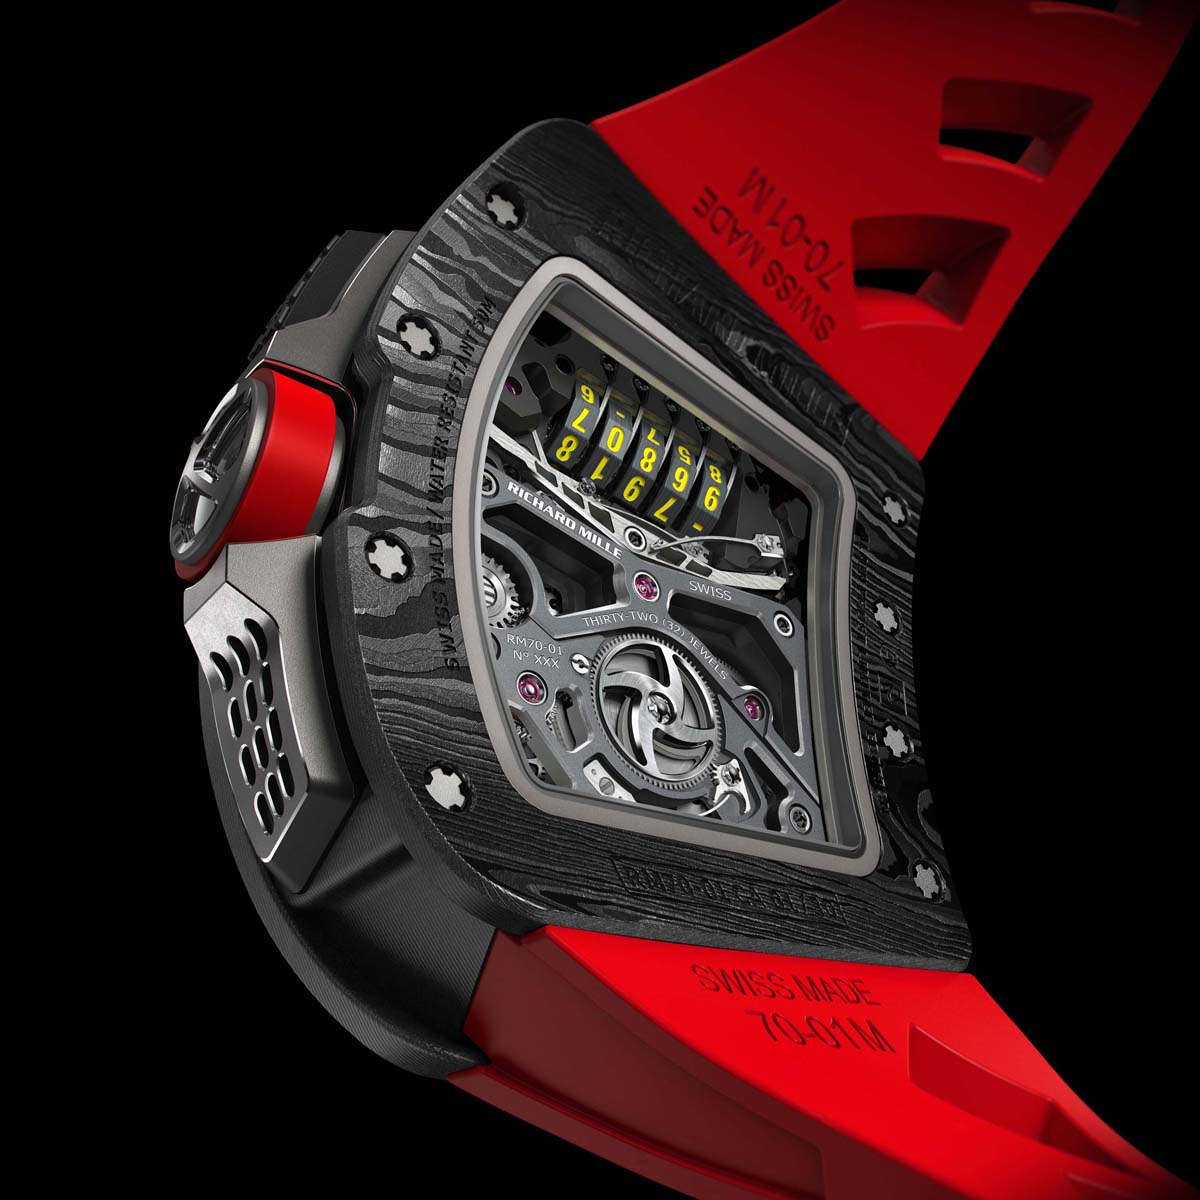 La Cote des Montres : Photo - Richard Mille RM 70-01 Tourbillon Alain Prost